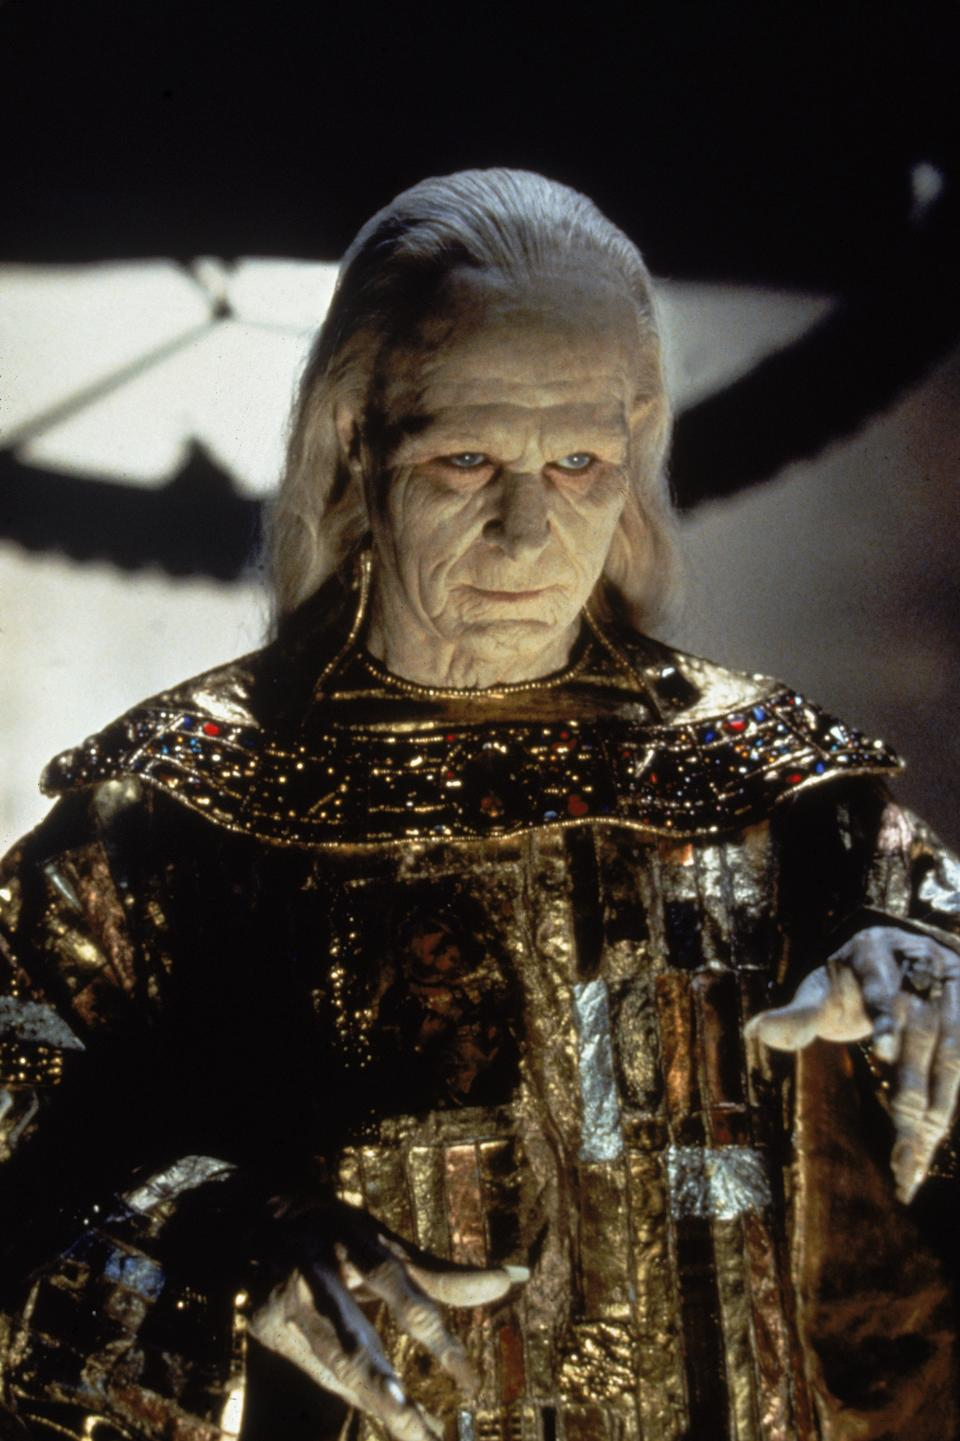 British actor Gary Oldman, very heavily made up and dressed in a metallic. jewel-encrusted cape, gestures menacingly in a scene from the film 'Bram Stoker's Dracula,' directed by Francis Ford Coppola, California, 1992. (Photo by Columbia Pictures/Fotos International/Getty Images)